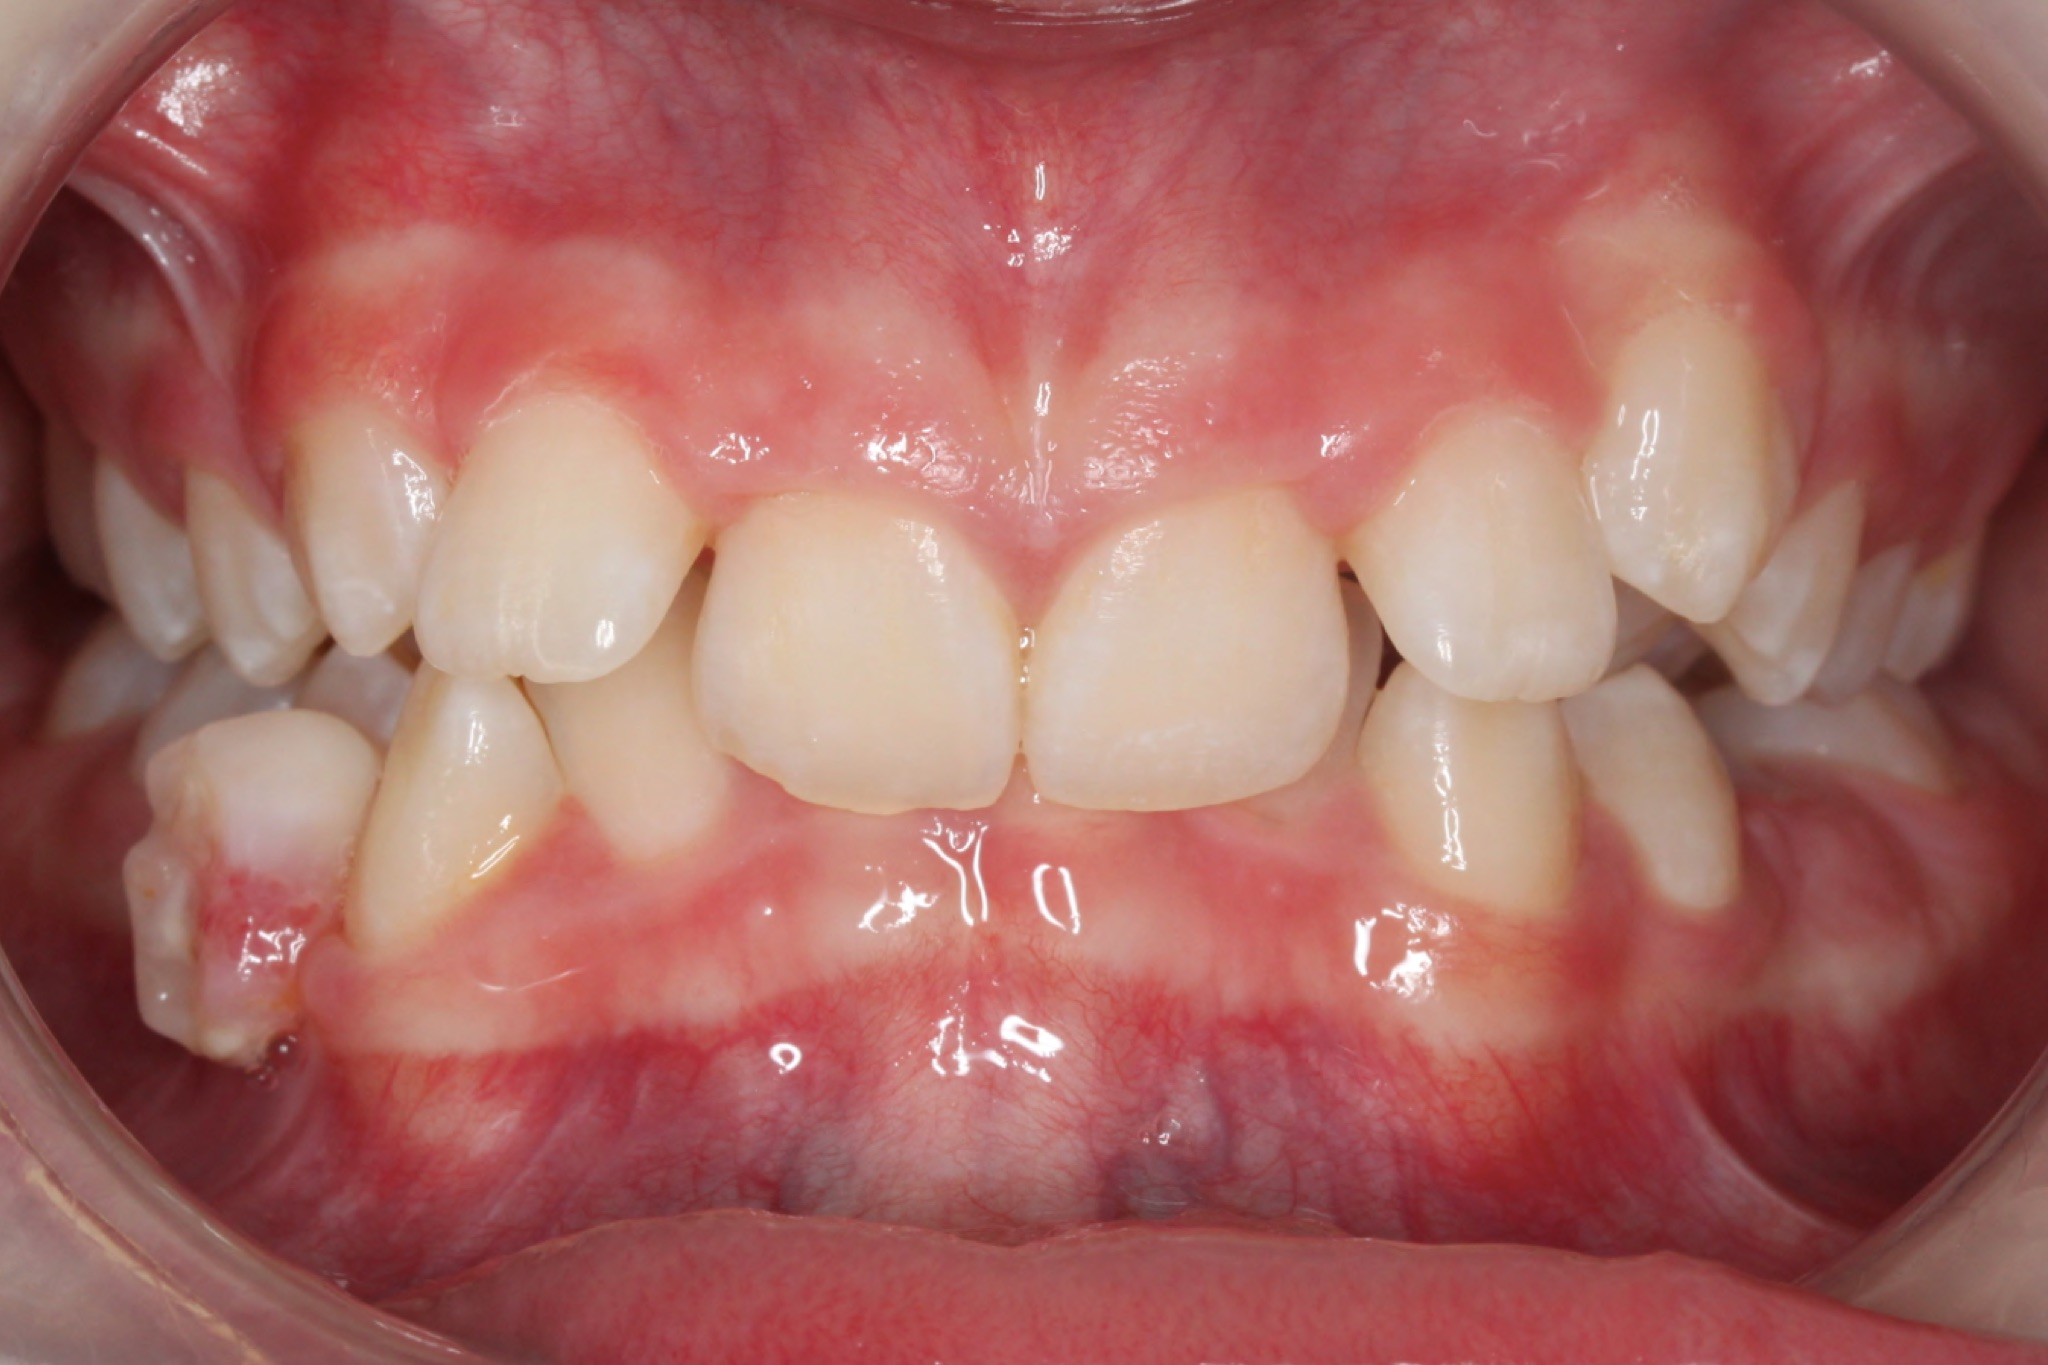 JSFrontal Intraoral PhotoINITIAL.jpg